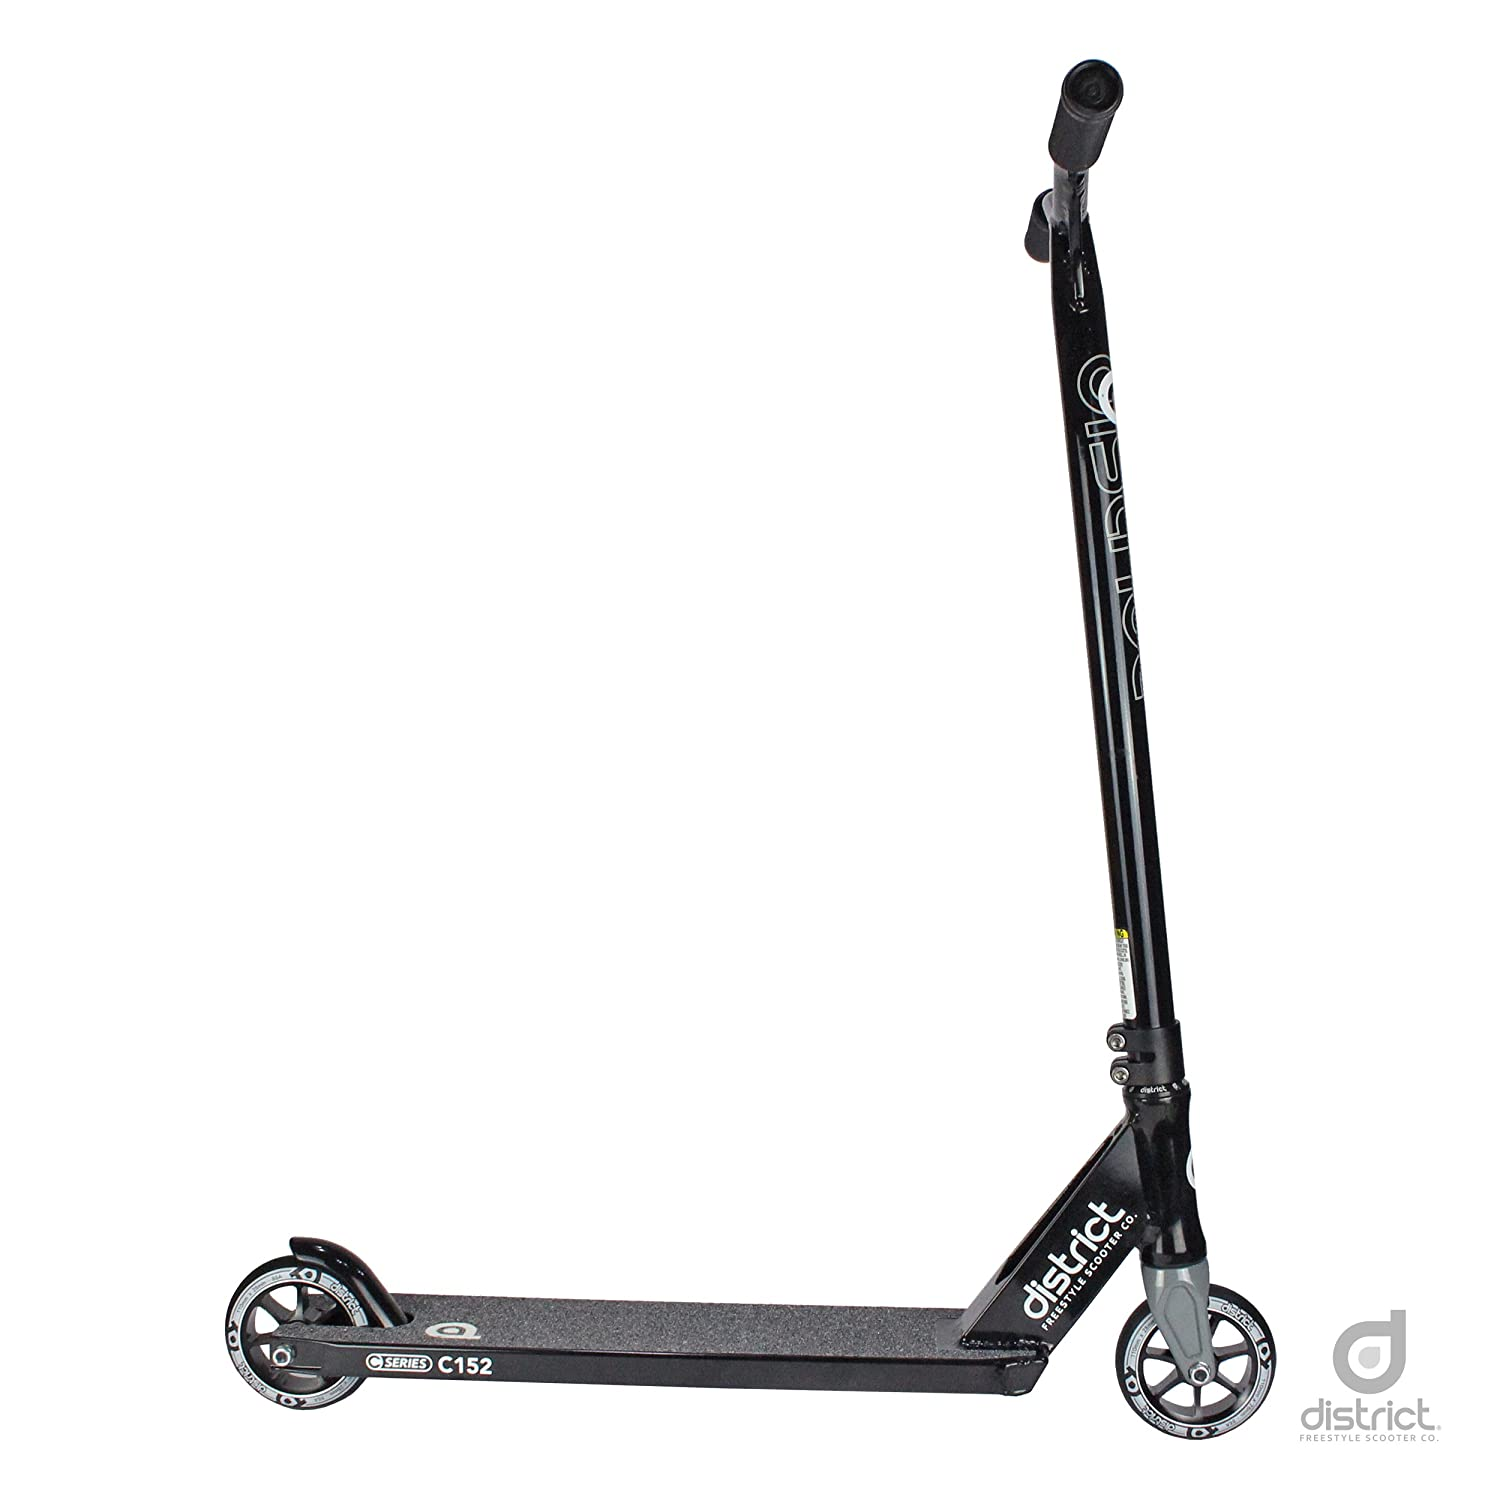 District C152 Pro Scooter